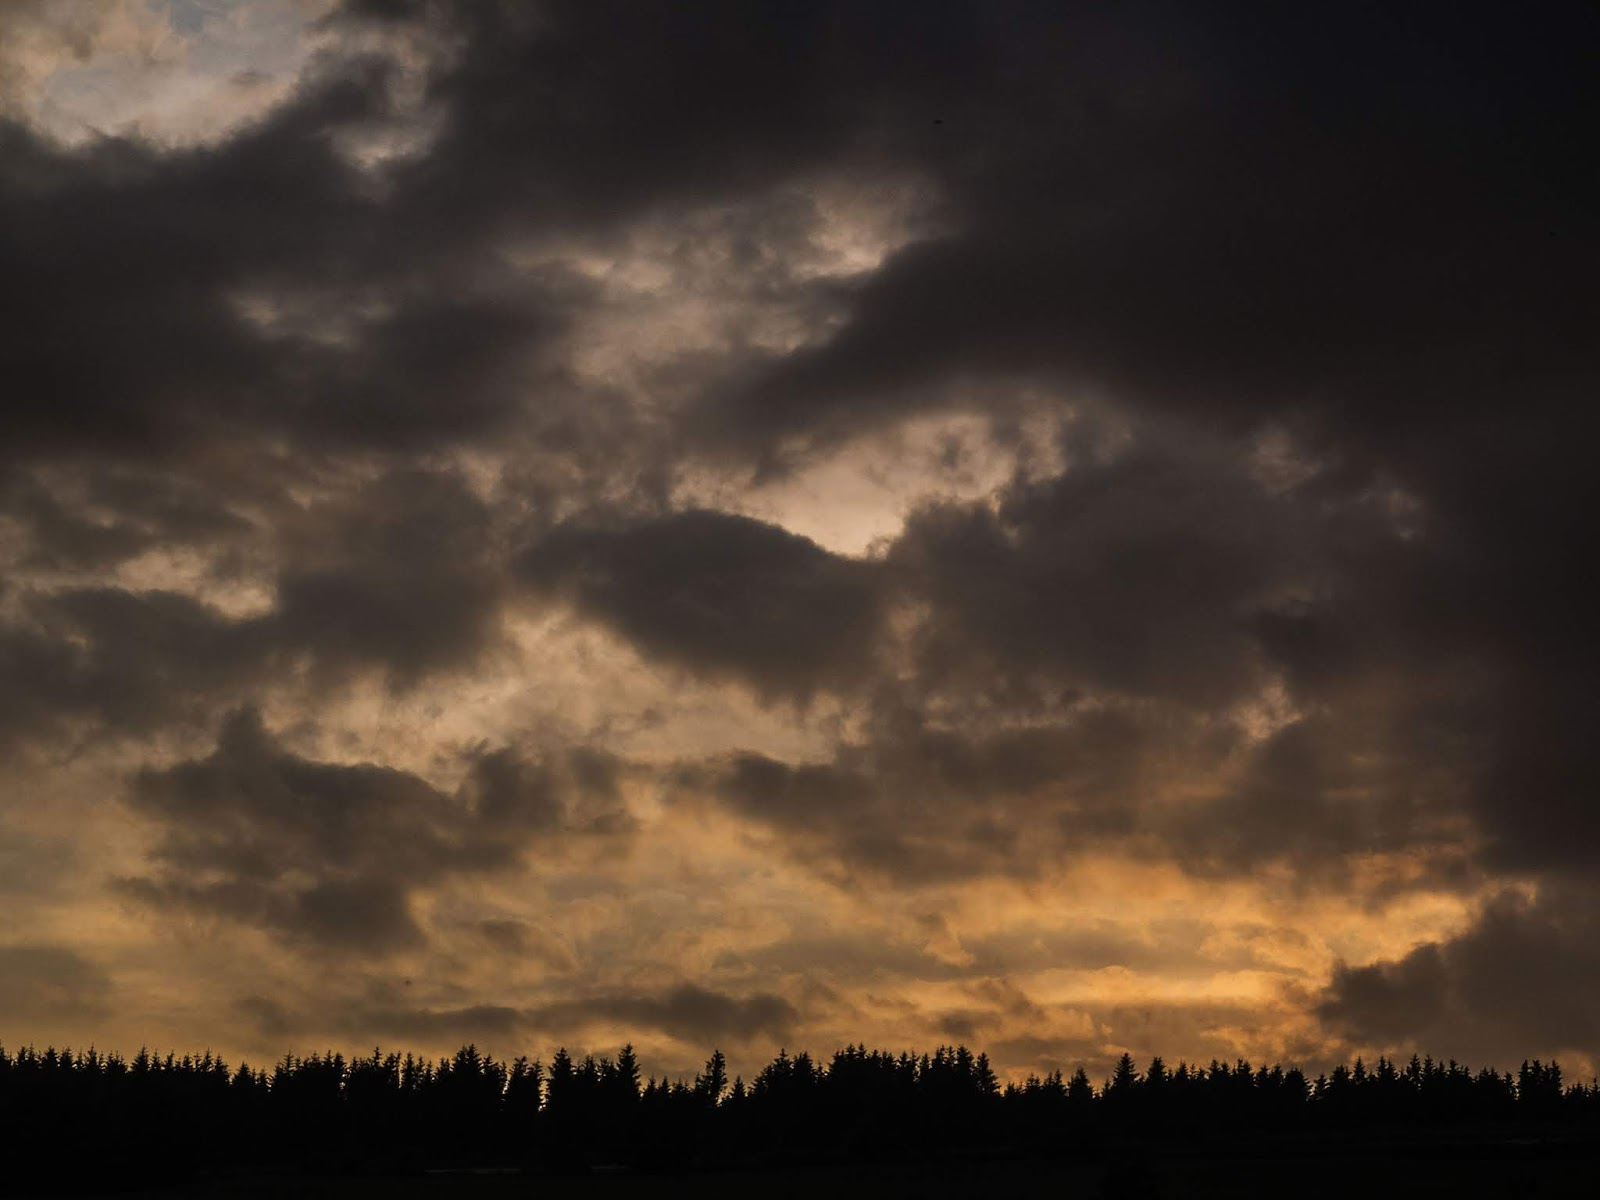 Dark grey clouds hovering over a yellow sunset over a conifer forestry.